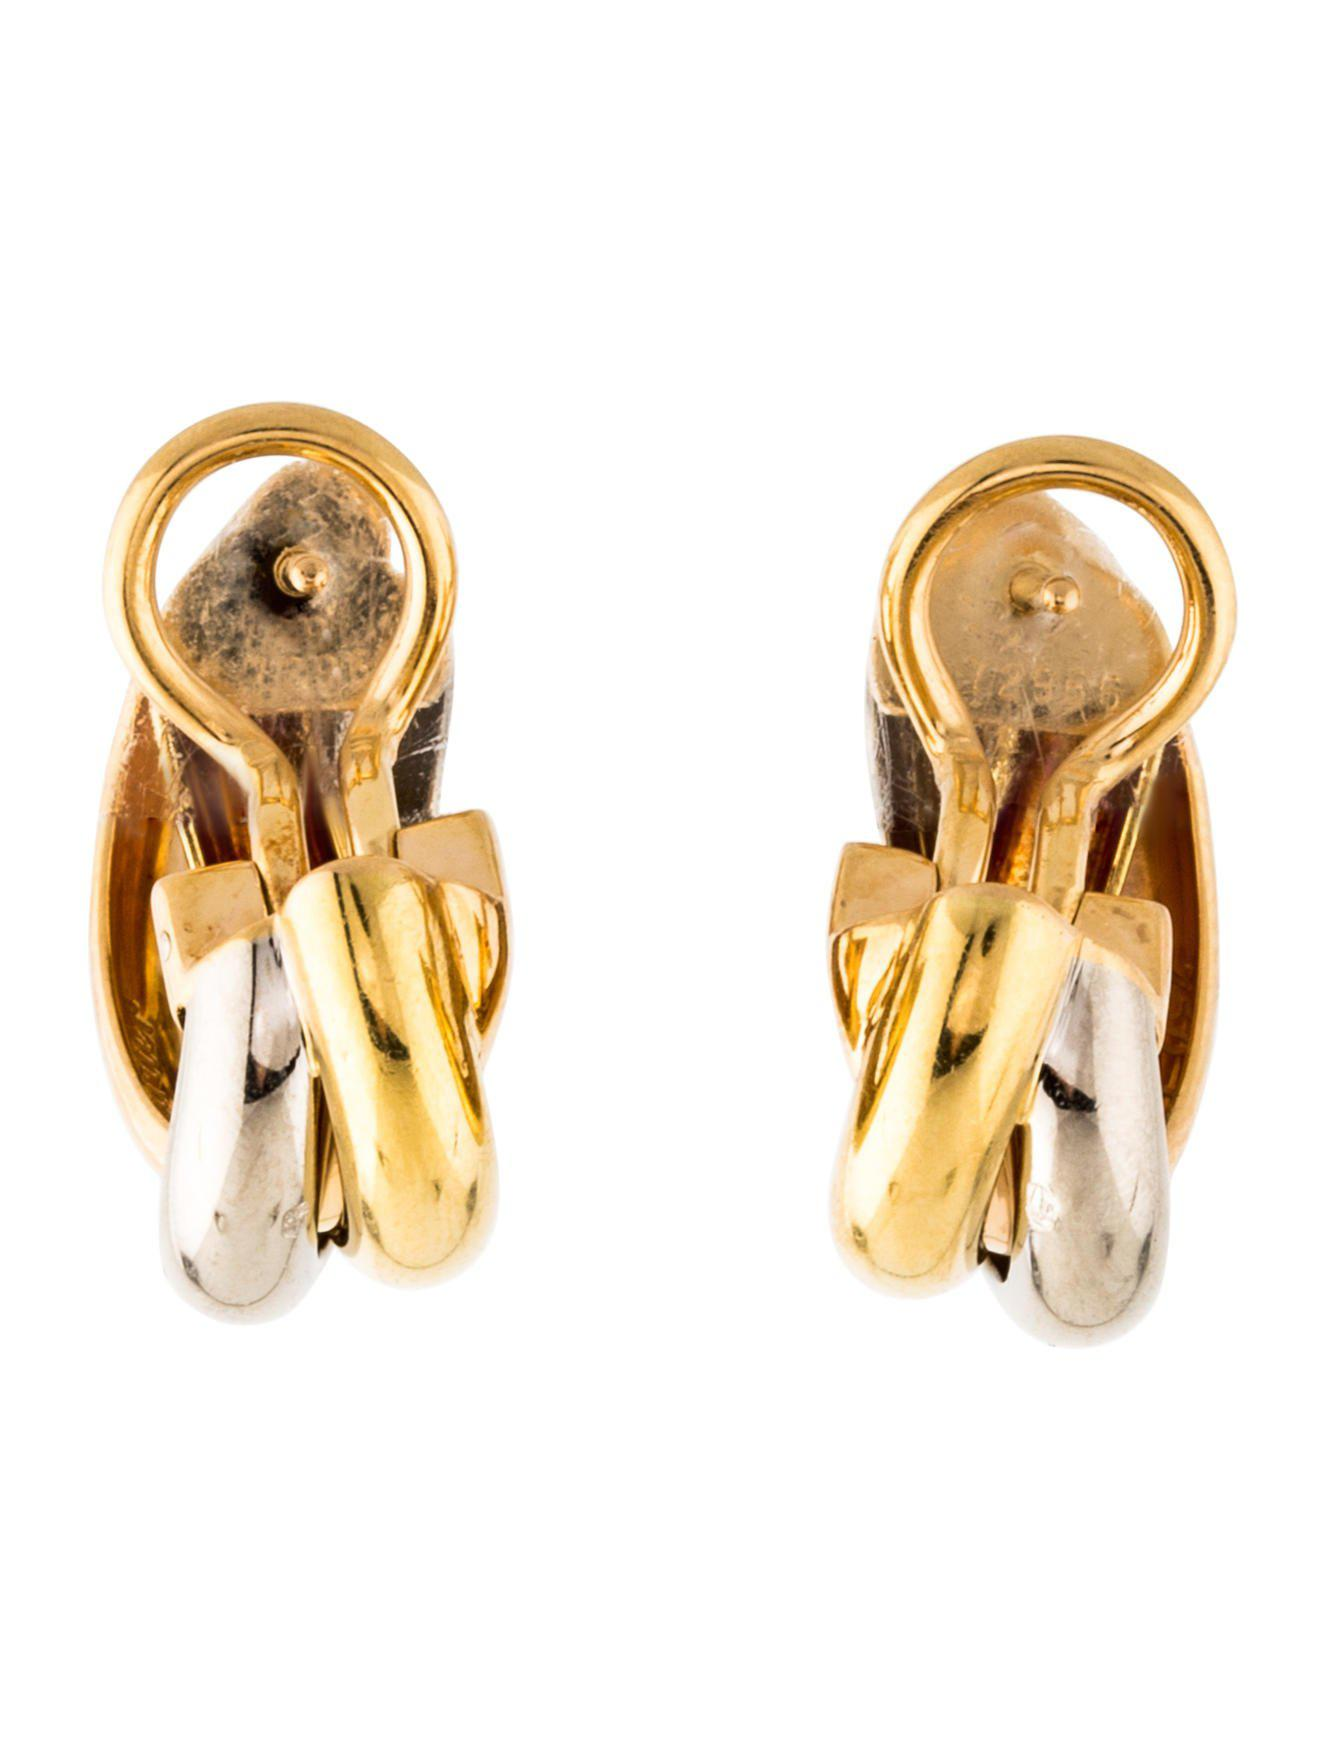 contessa cartier vintage the k trinity ring de gold products earrings